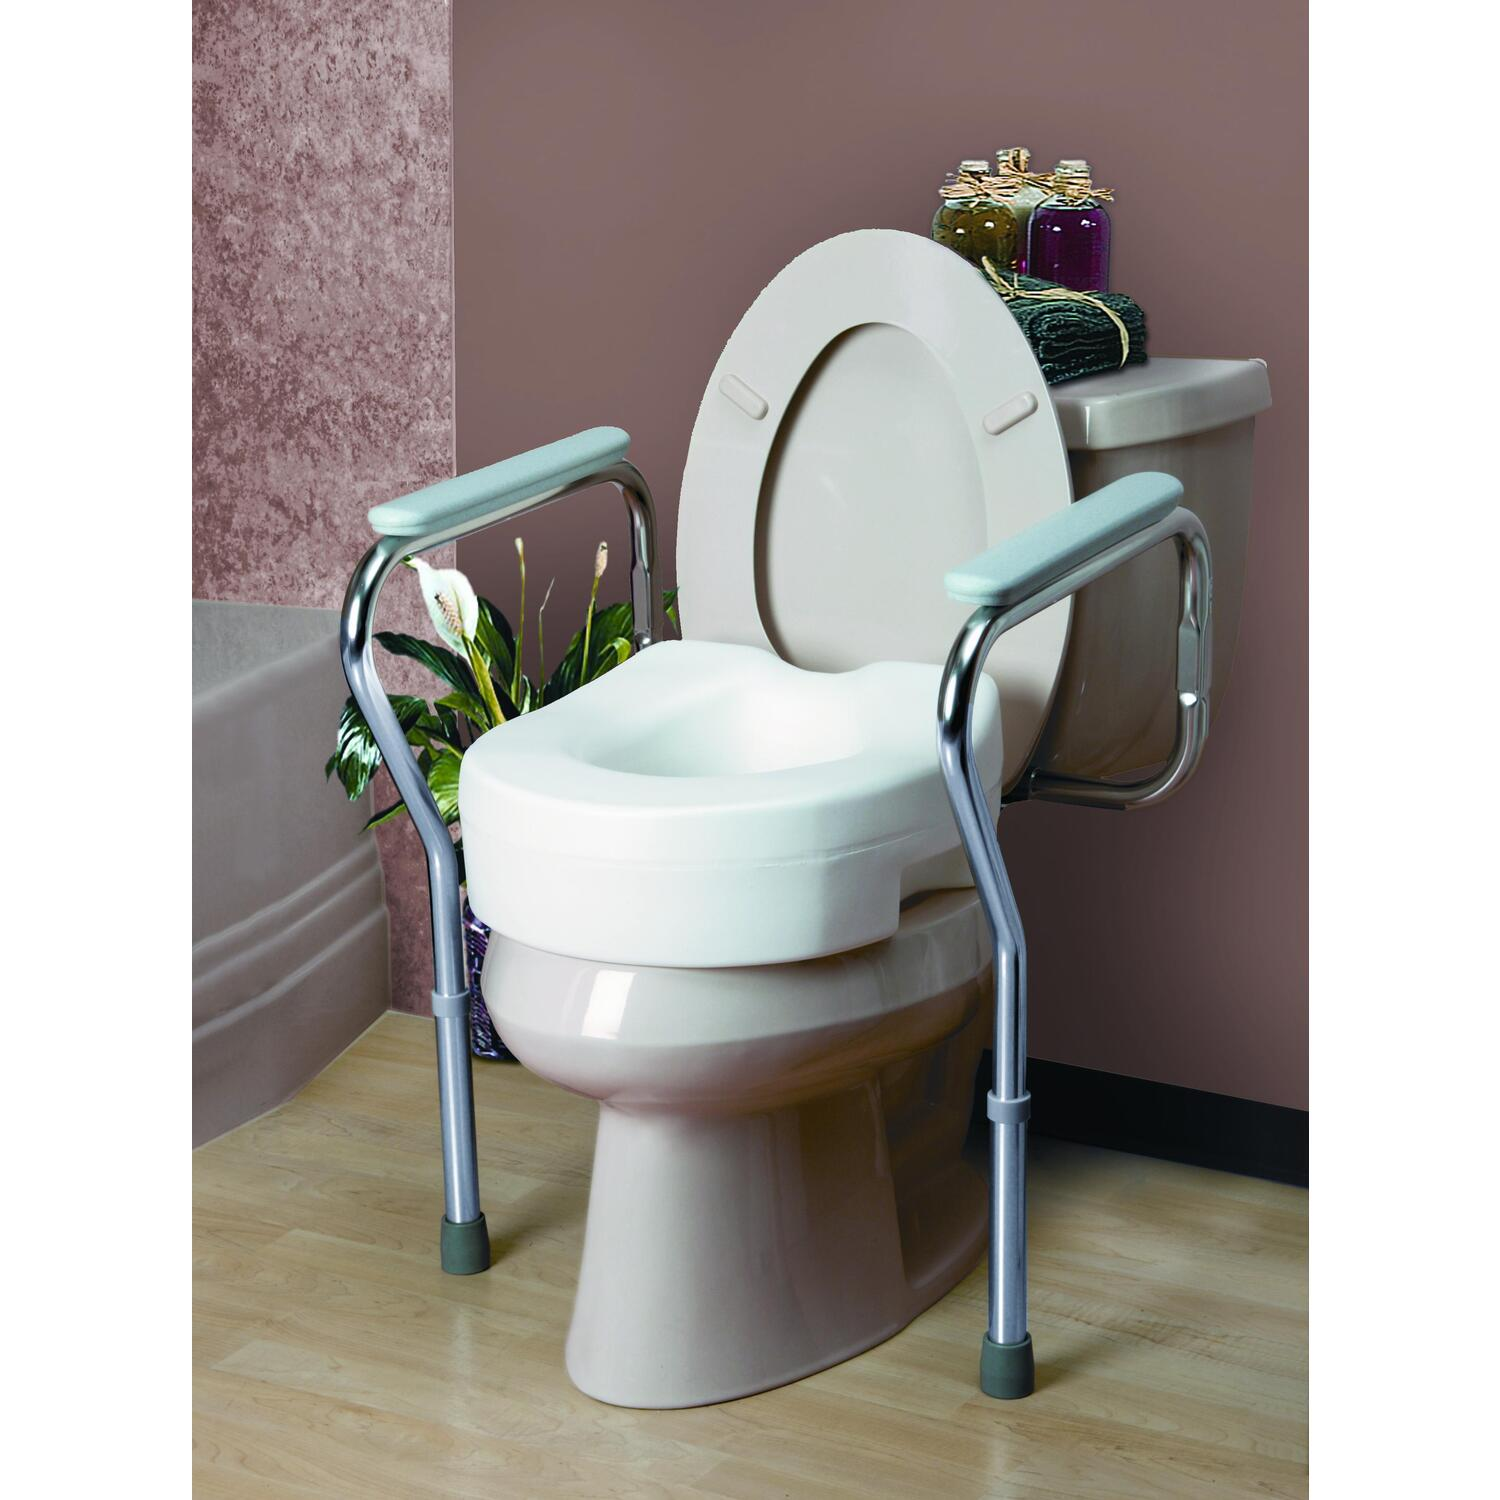 Invacare Toilet Safety Frame 32 99 46 94